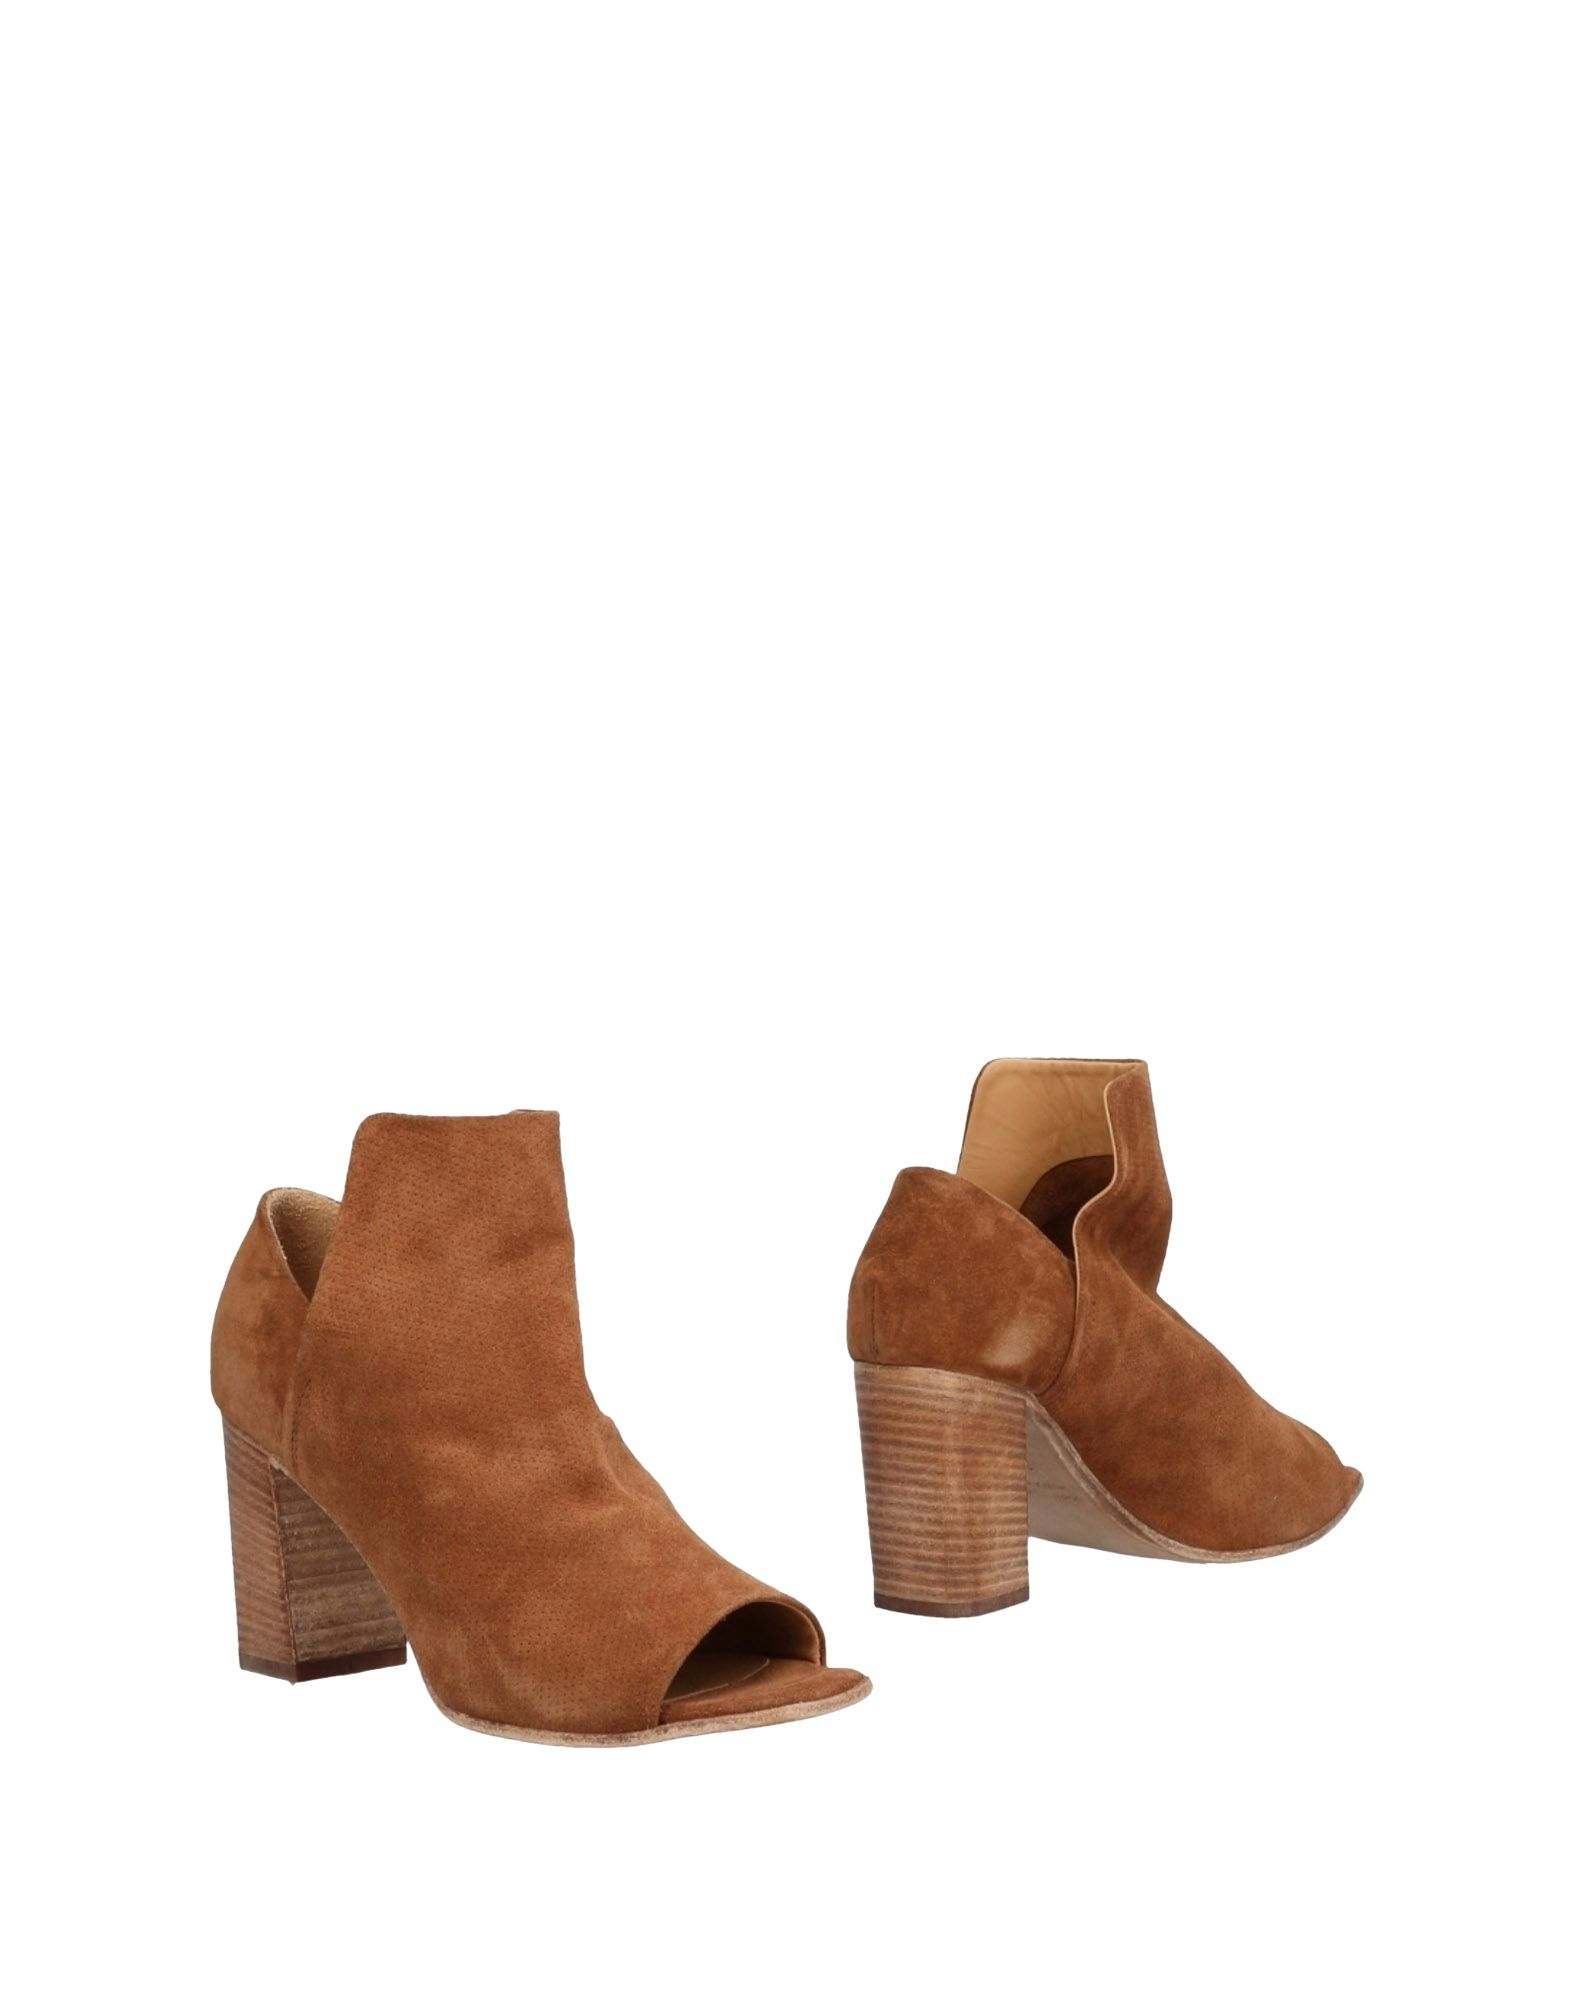 LEMARÉ Ankle Boot in Camel